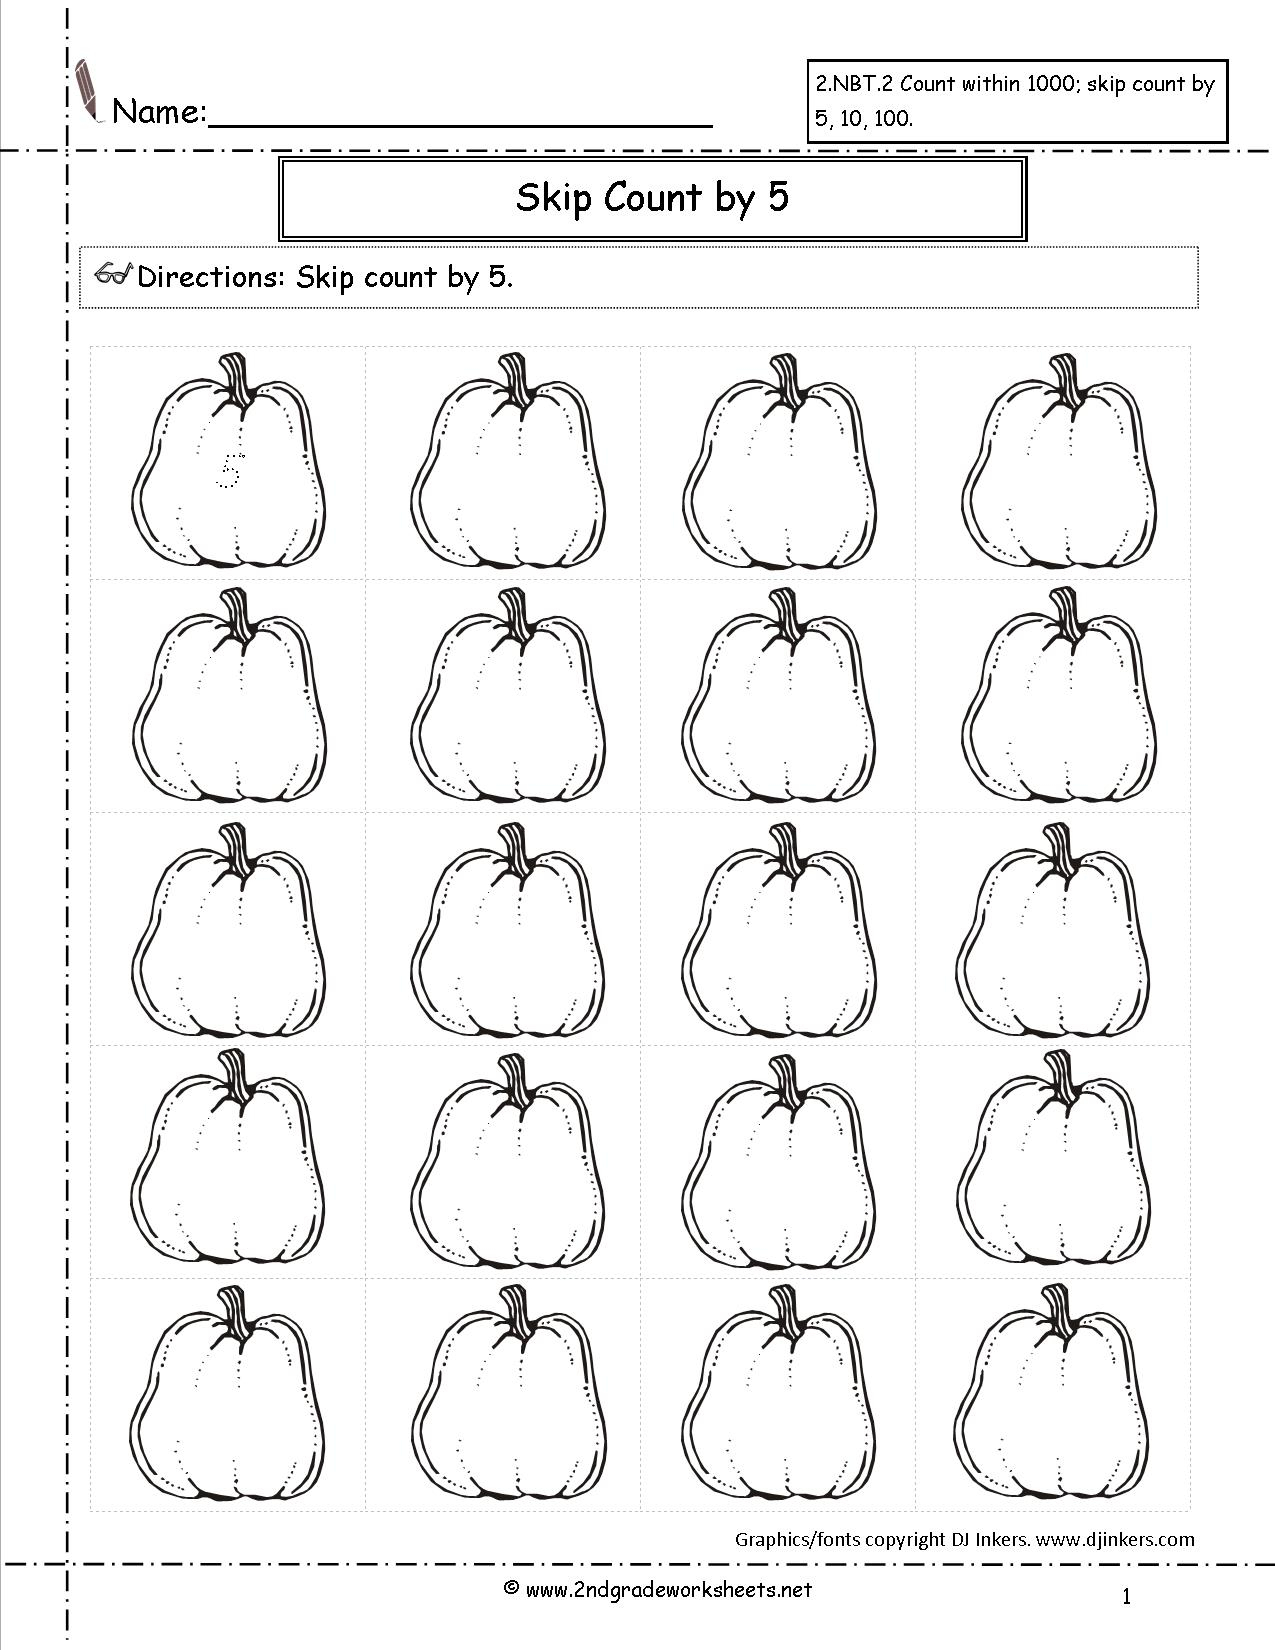 Halloween Worksheets And Printouts - Free Printable Halloween Worksheets